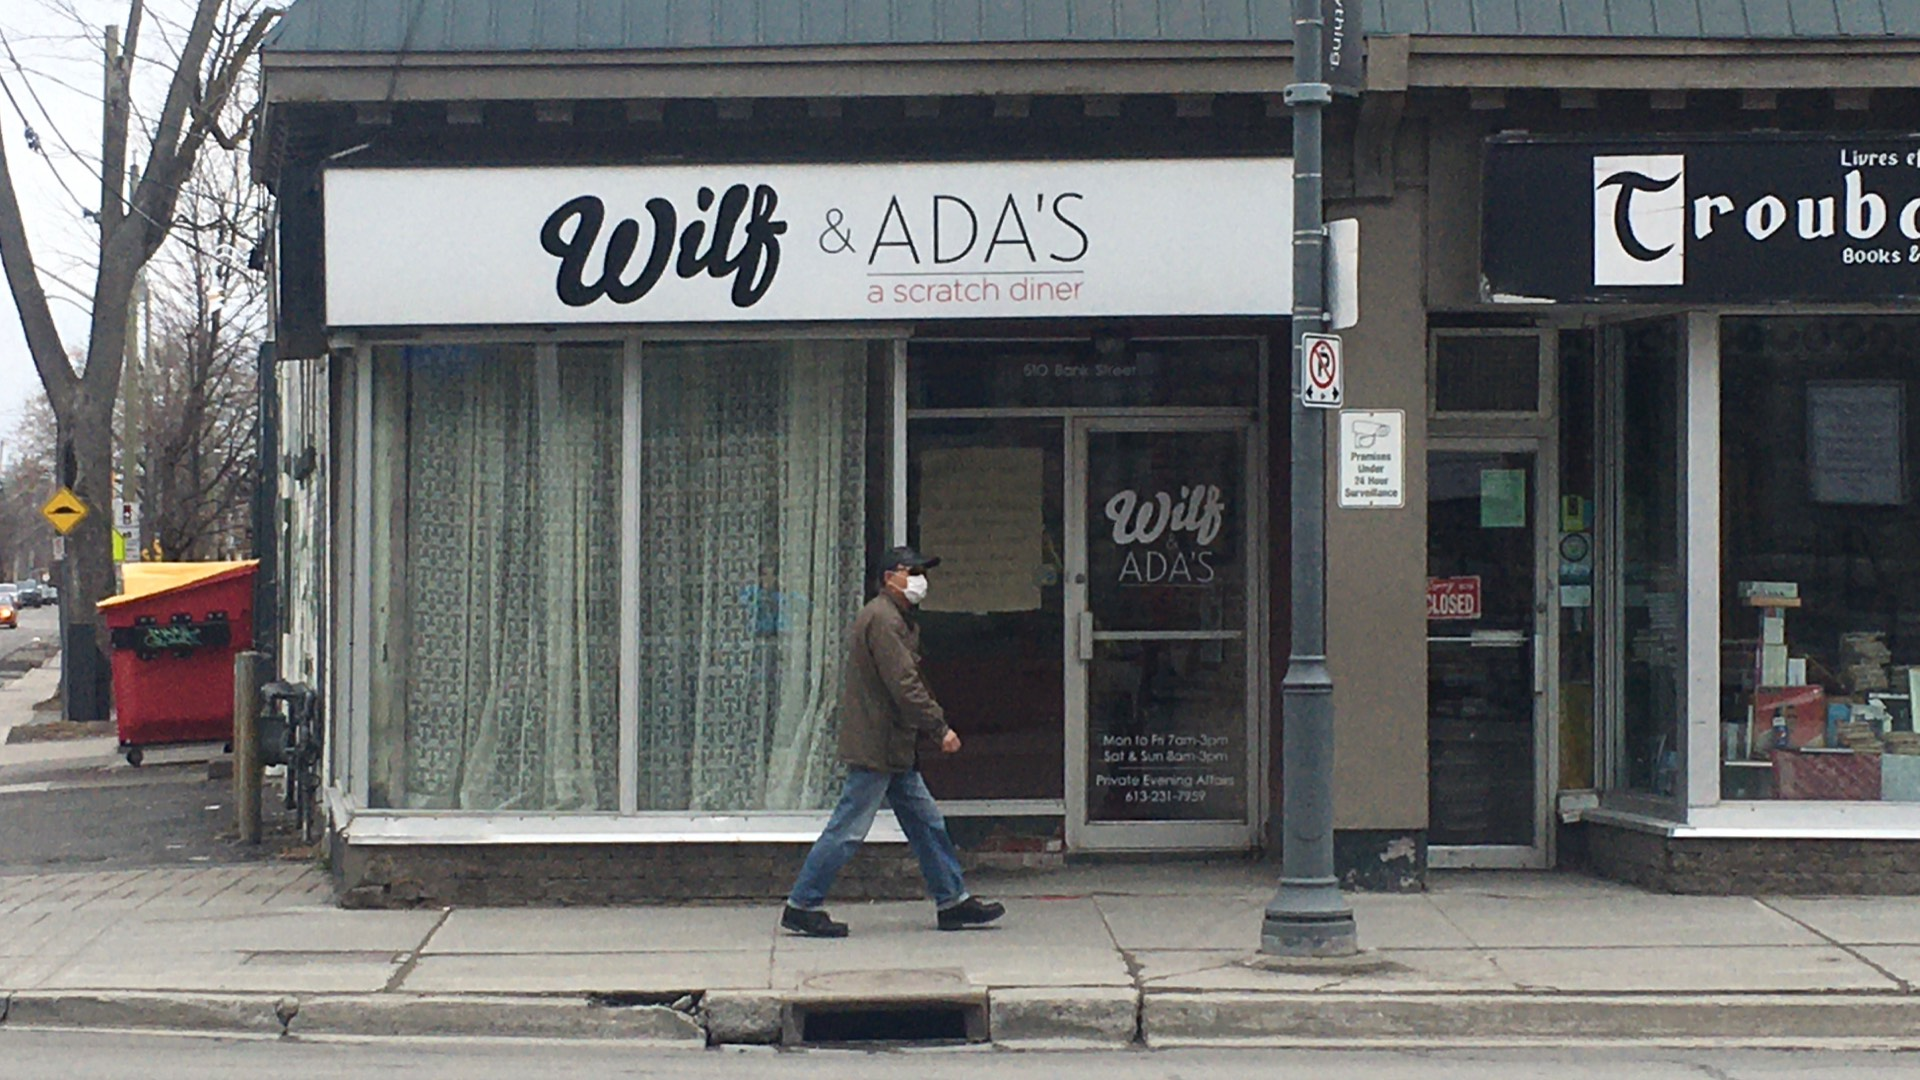 Open or shut? COVID crisis forces tough choices for Ottawa restaurants